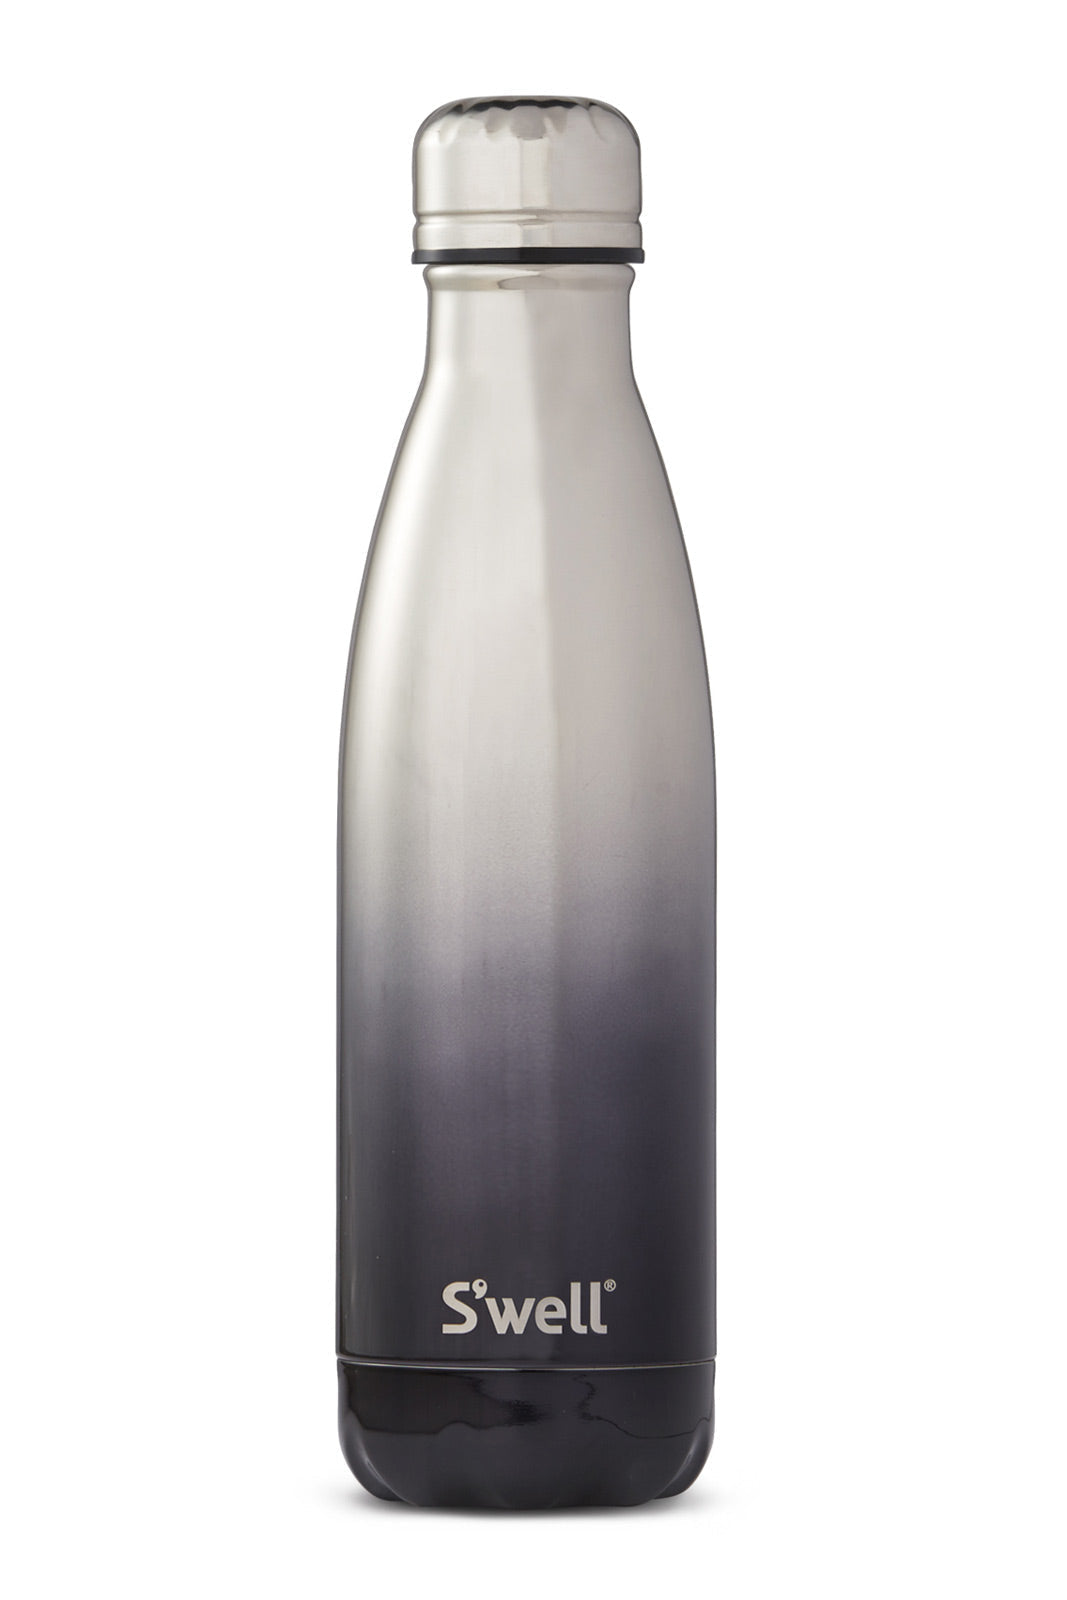 S'Well White Gold Ombre 500ml image 1 - The Sports Edit